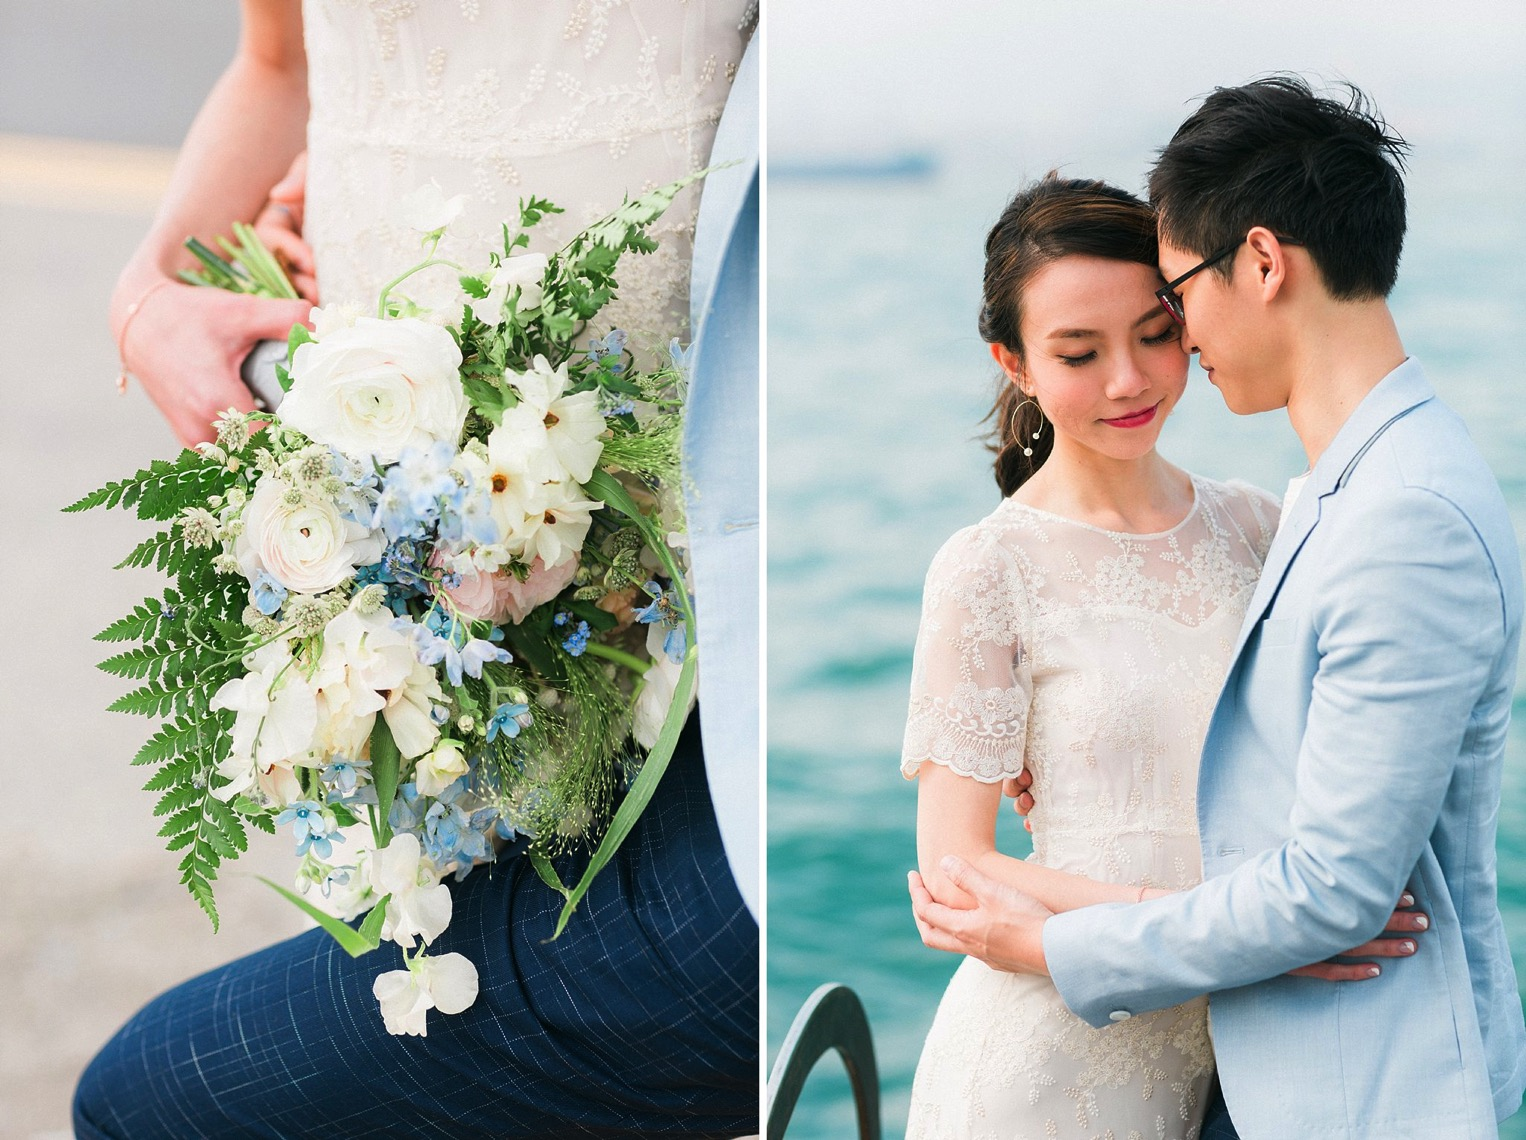 French Grey Photography Hong Kong Prewedding134